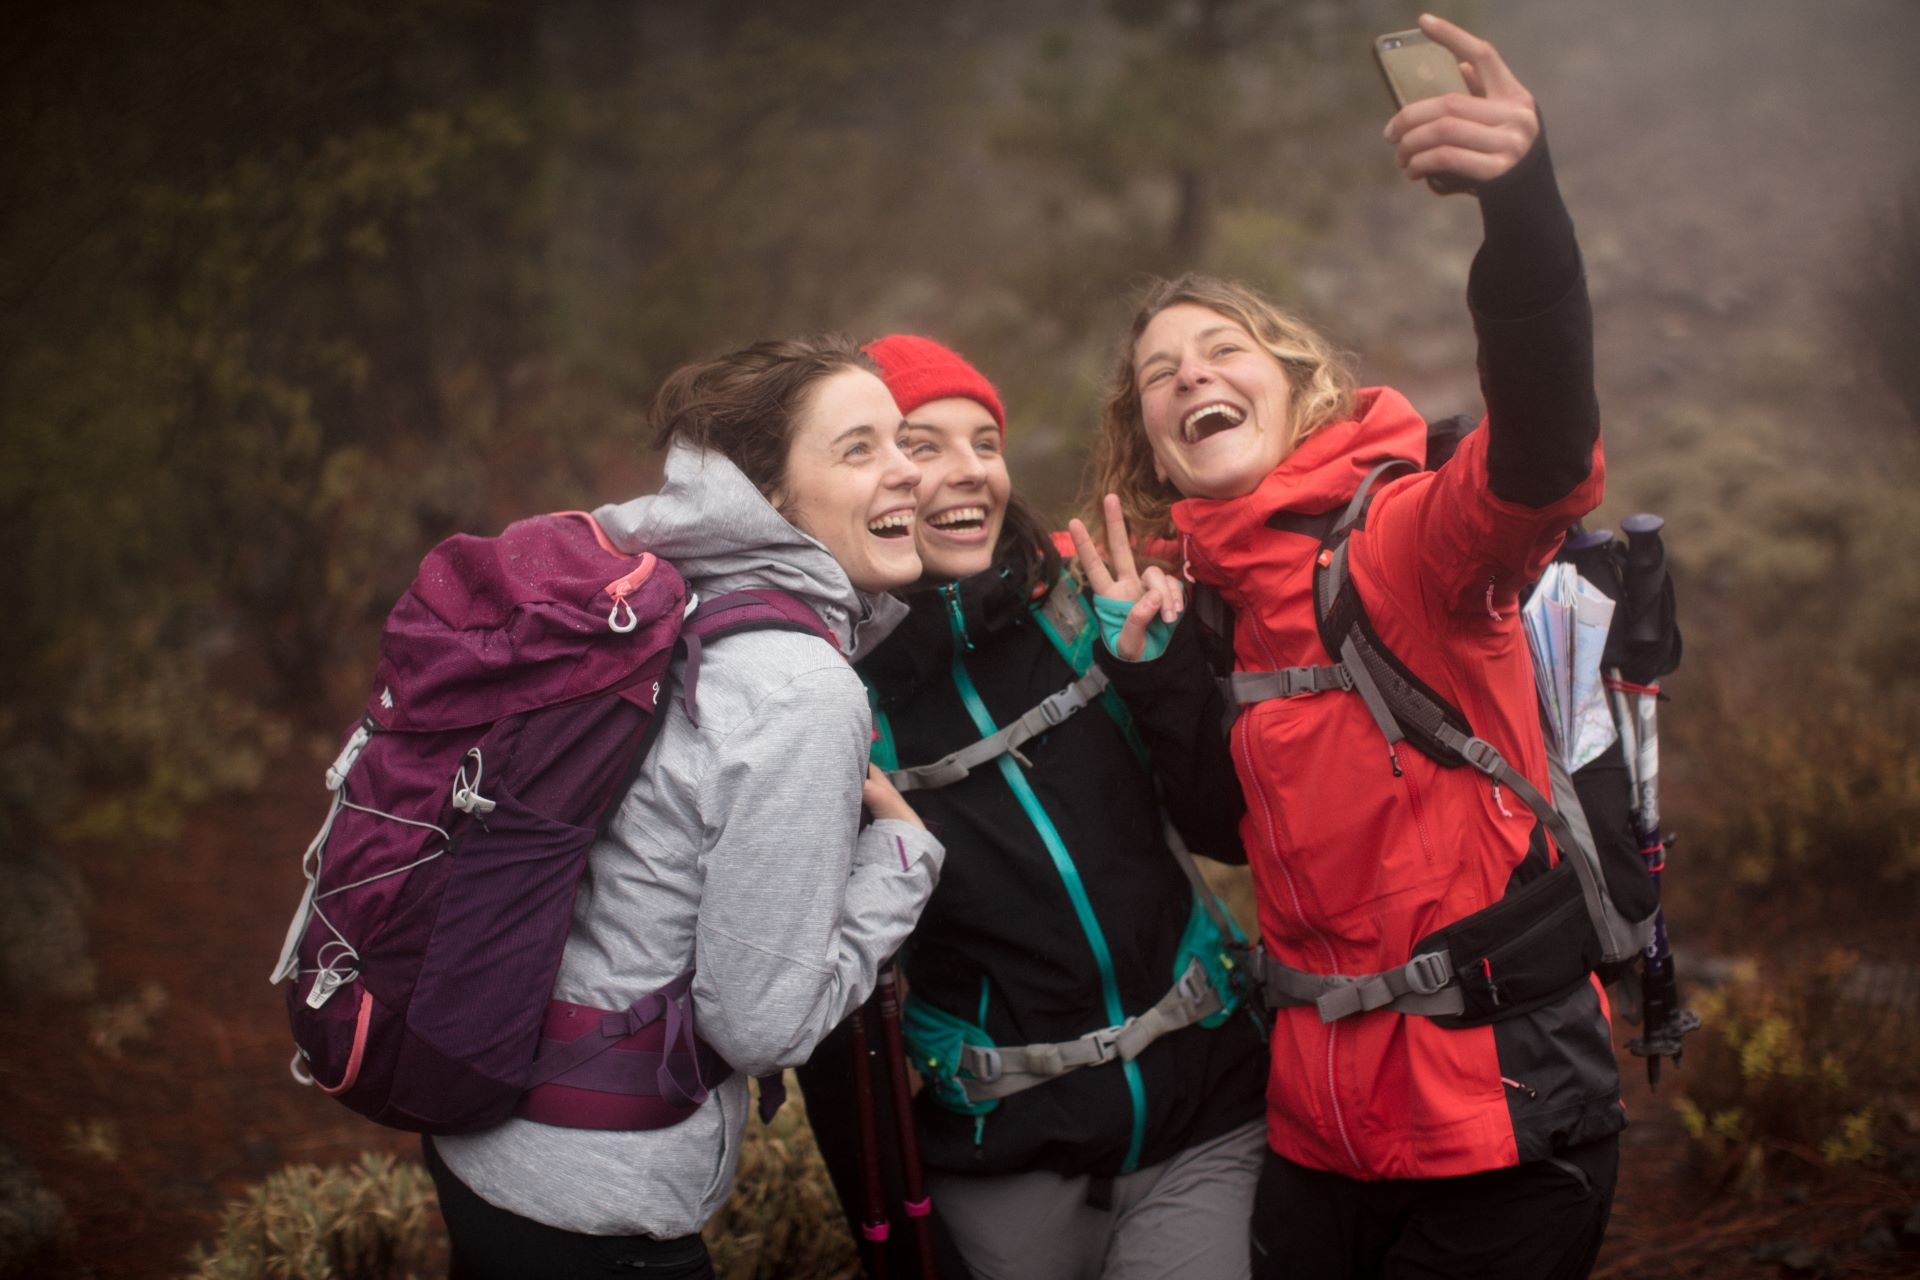 Top 5 Benefits Of Walking And Hiking